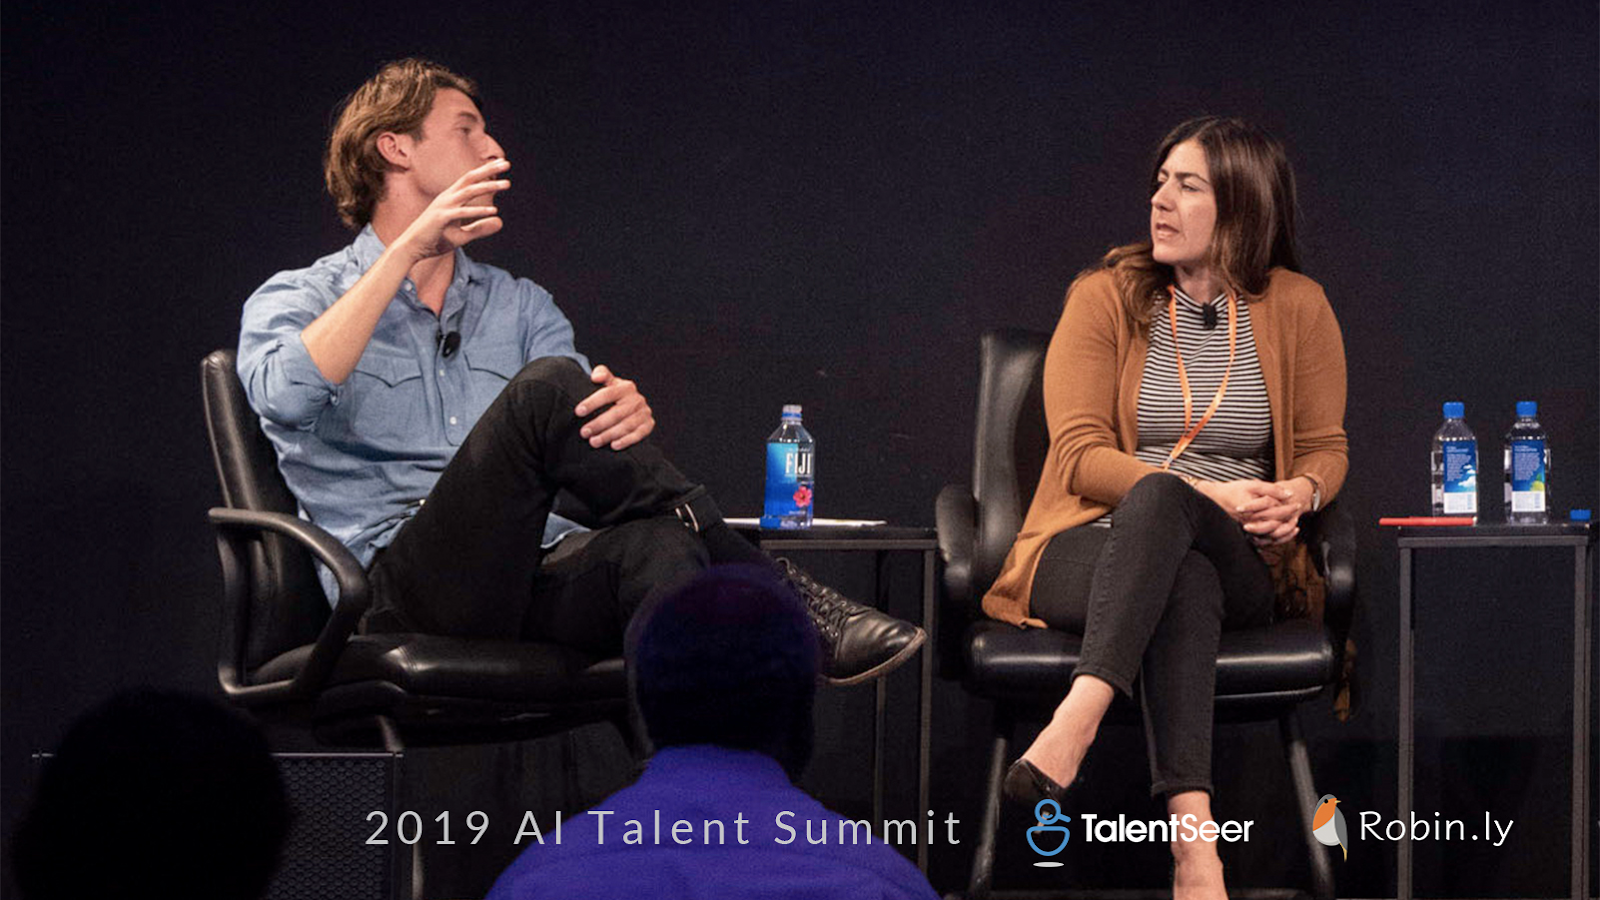 Ted Maguire, Director of Executive Talent @ Khosla Ventures; Georgina Salamy, Director of Talent @ Zoox -  2019 AI Talent Summit Highlights: Building Teams for The Future of AI